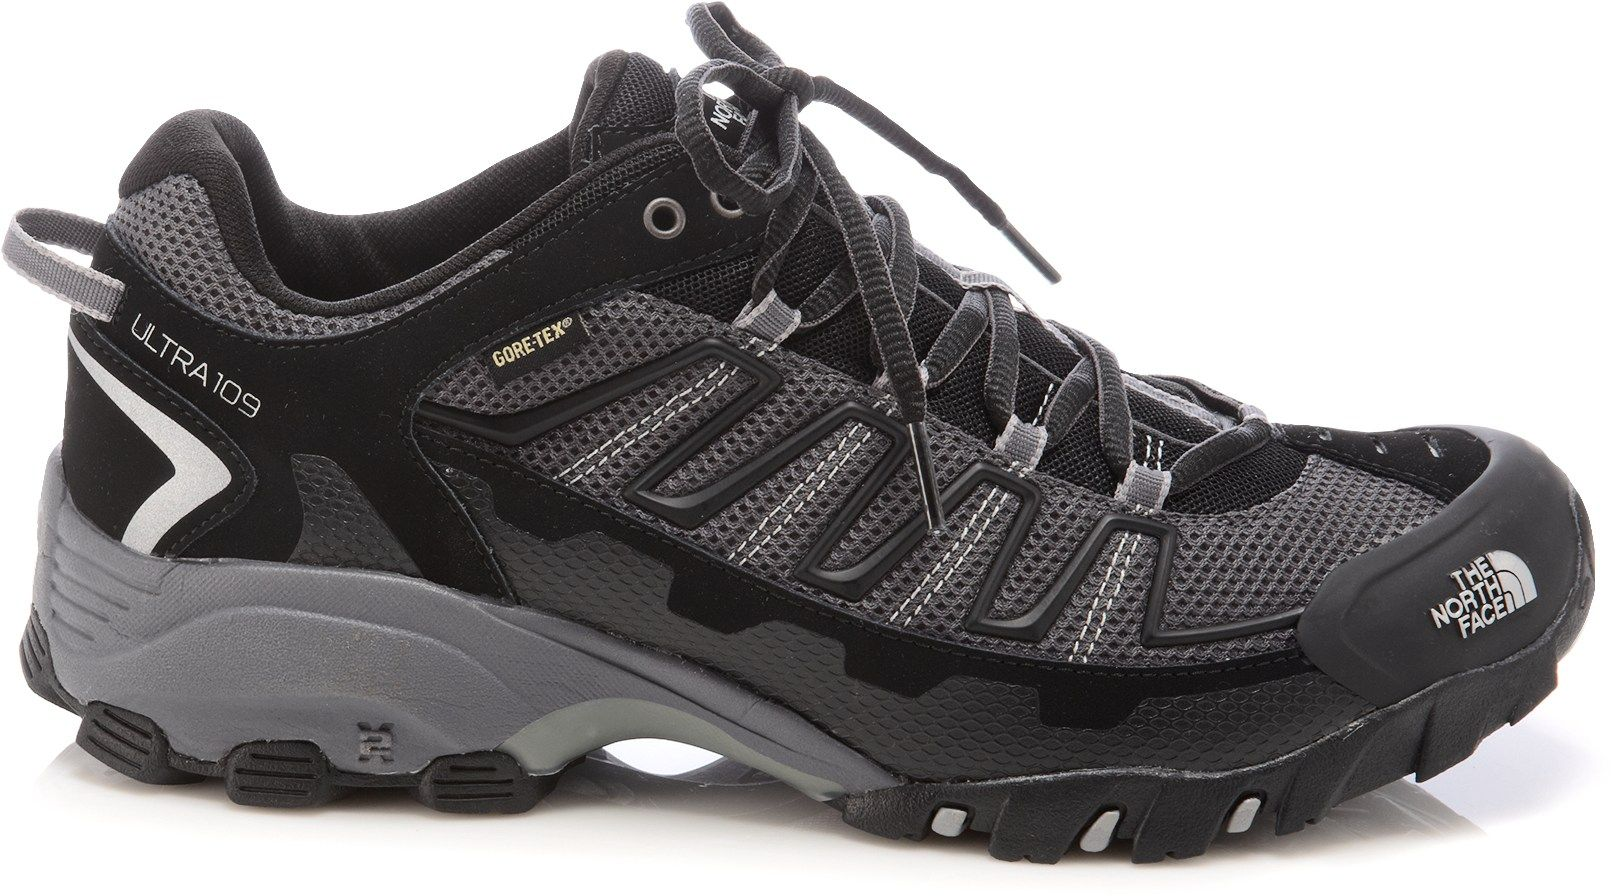 af2a55269 Ultra 109 Gore-Tex XCR Trail-Running Shoes - Men's | Clothing | Best ...